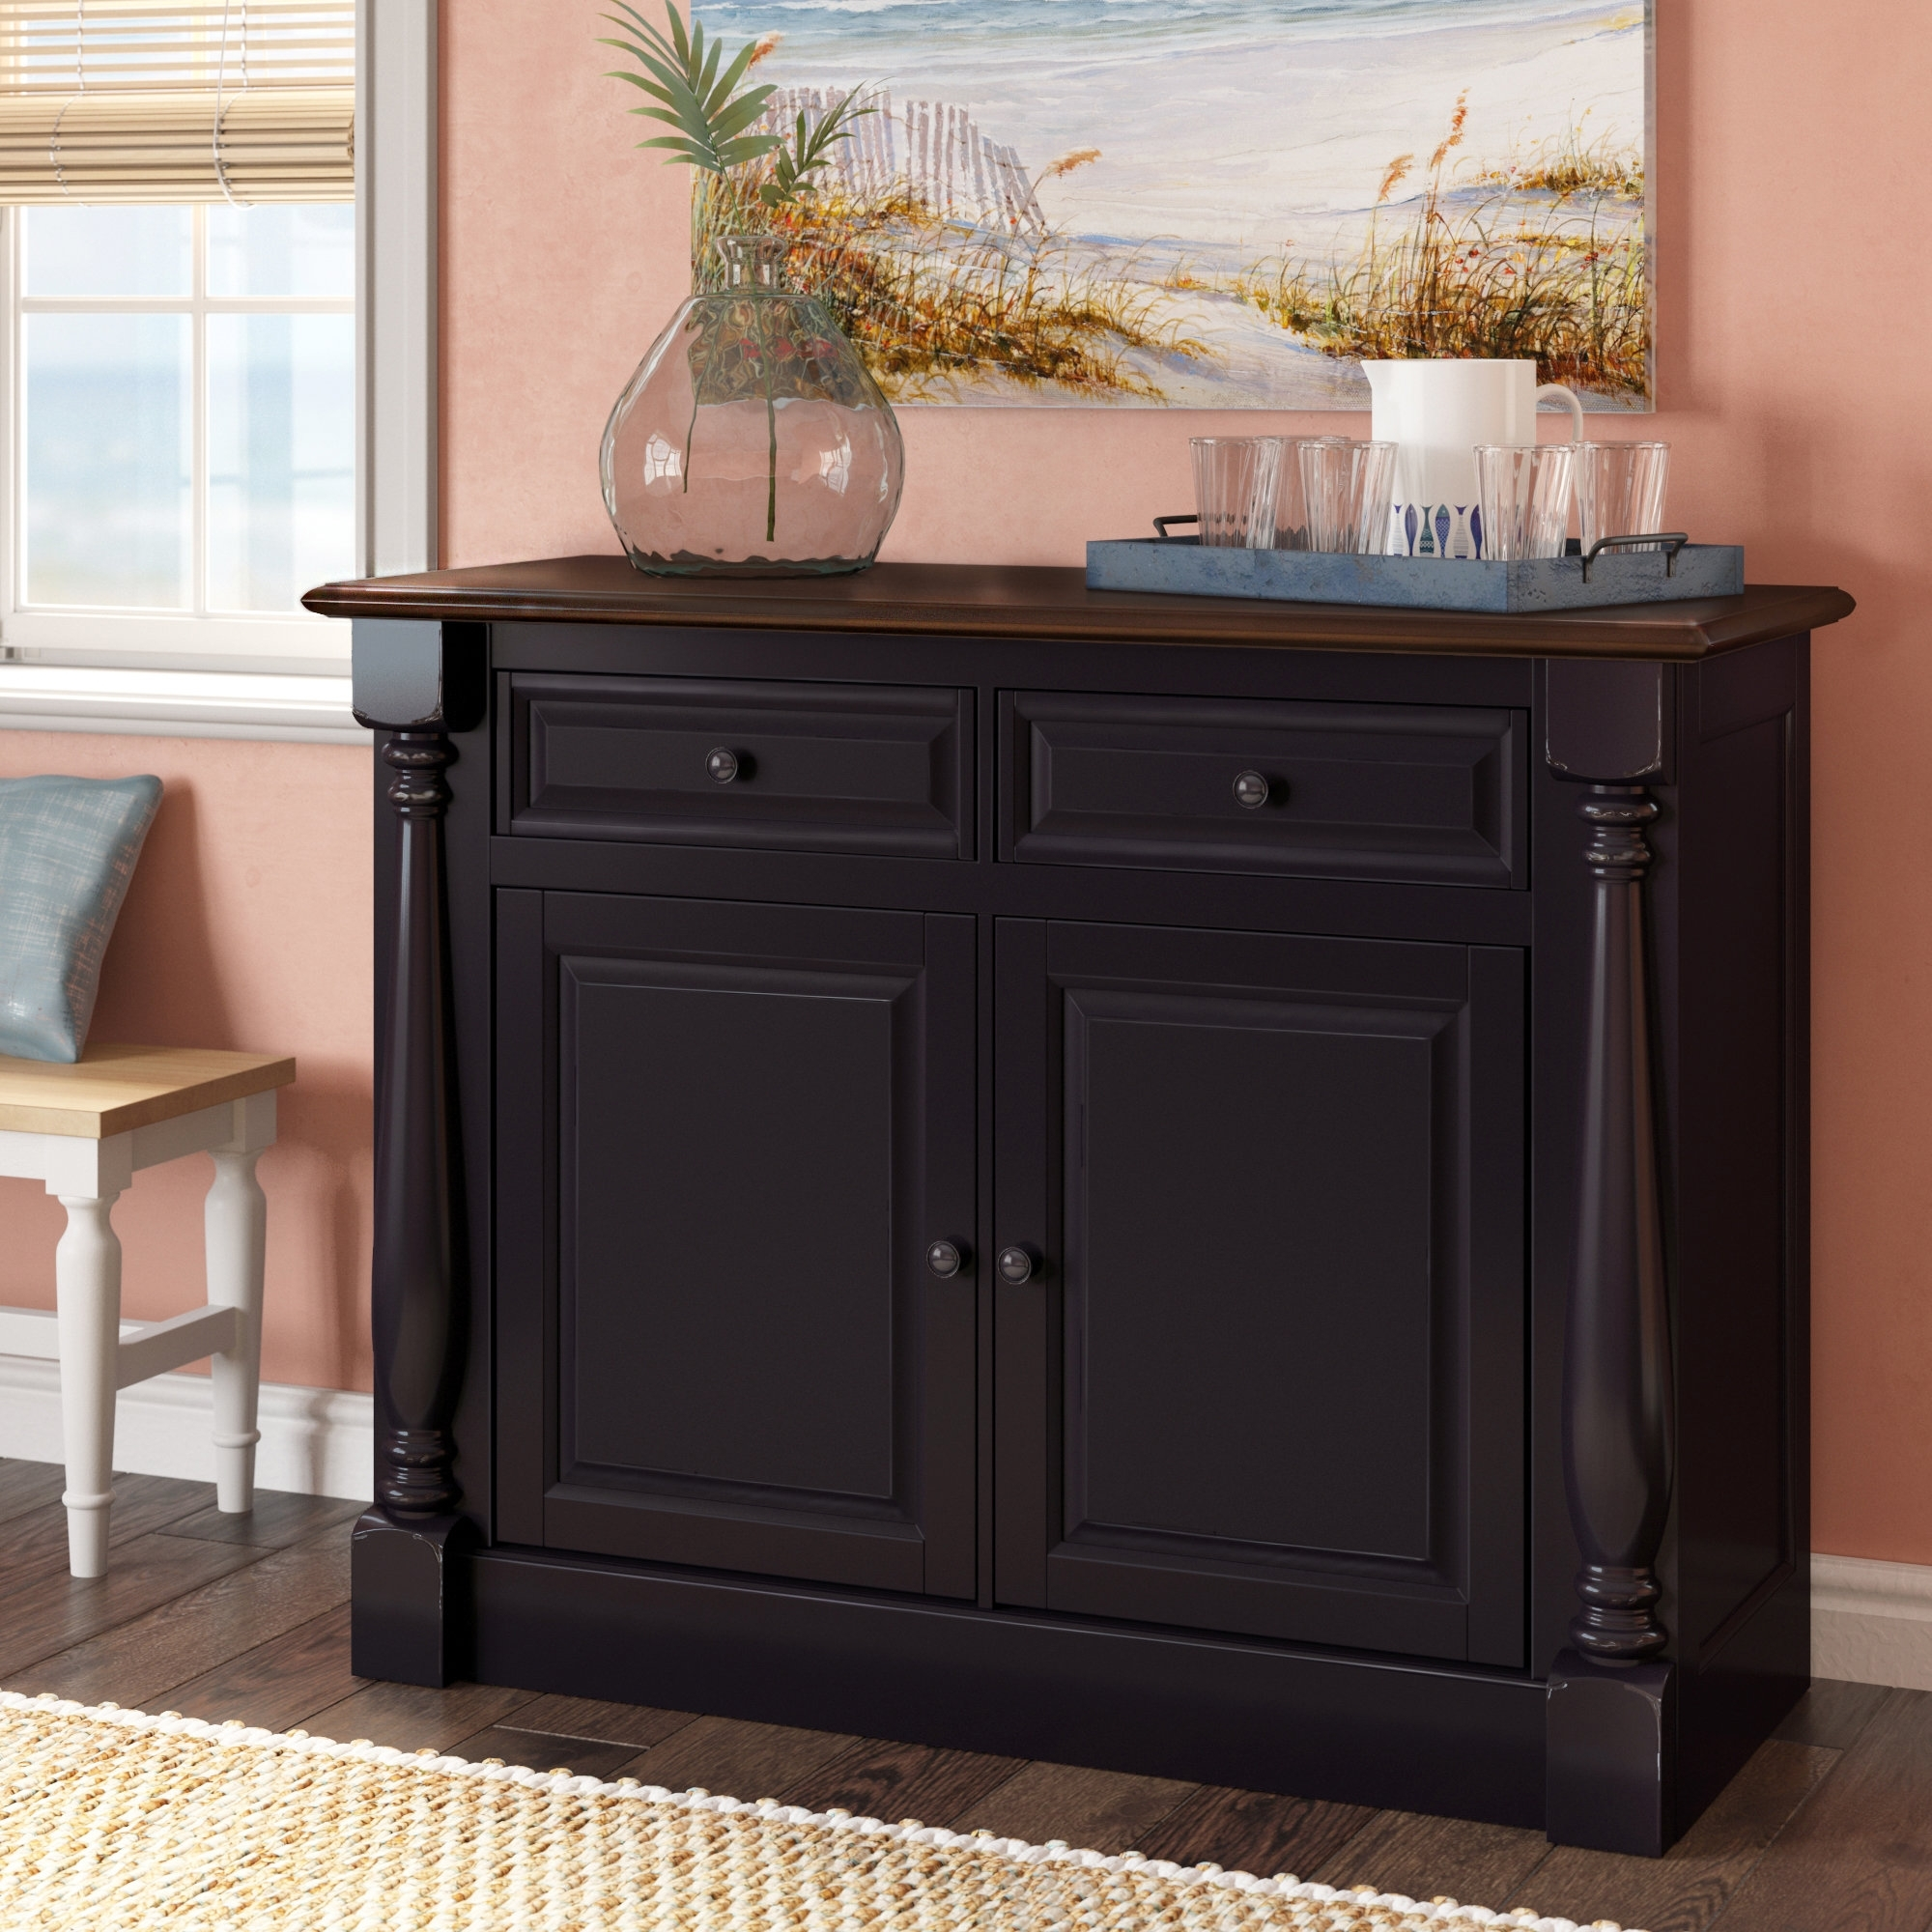 Beachcrest Home Kivalina Server & Reviews | Wayfair within Calhoun Sideboards (Image 2 of 30)